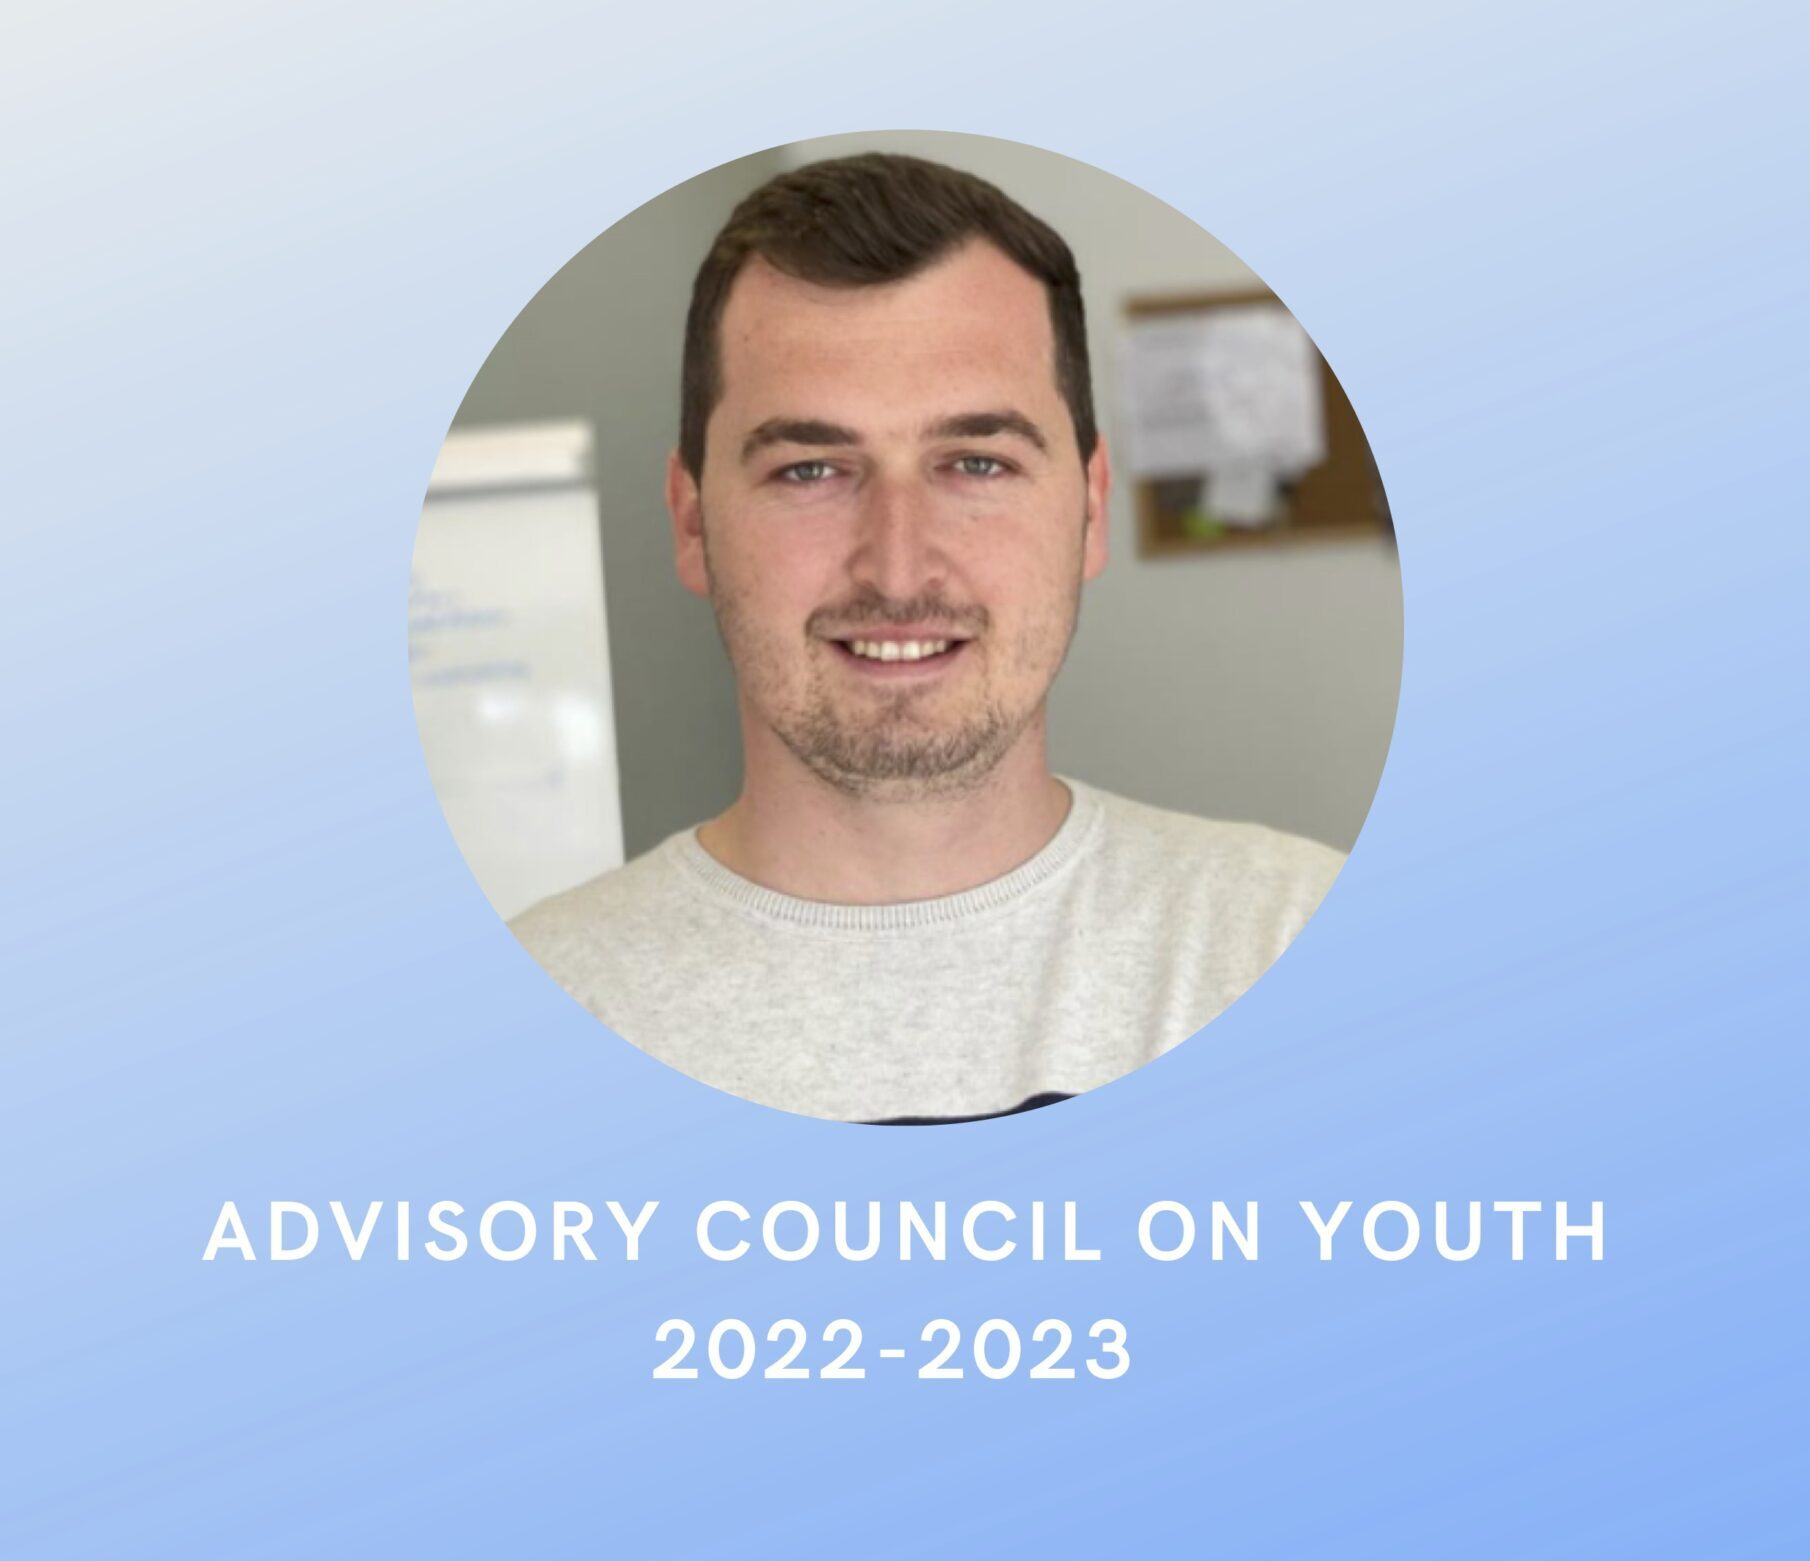 Nami Isaki re-elected for the Advisory Council on Youth